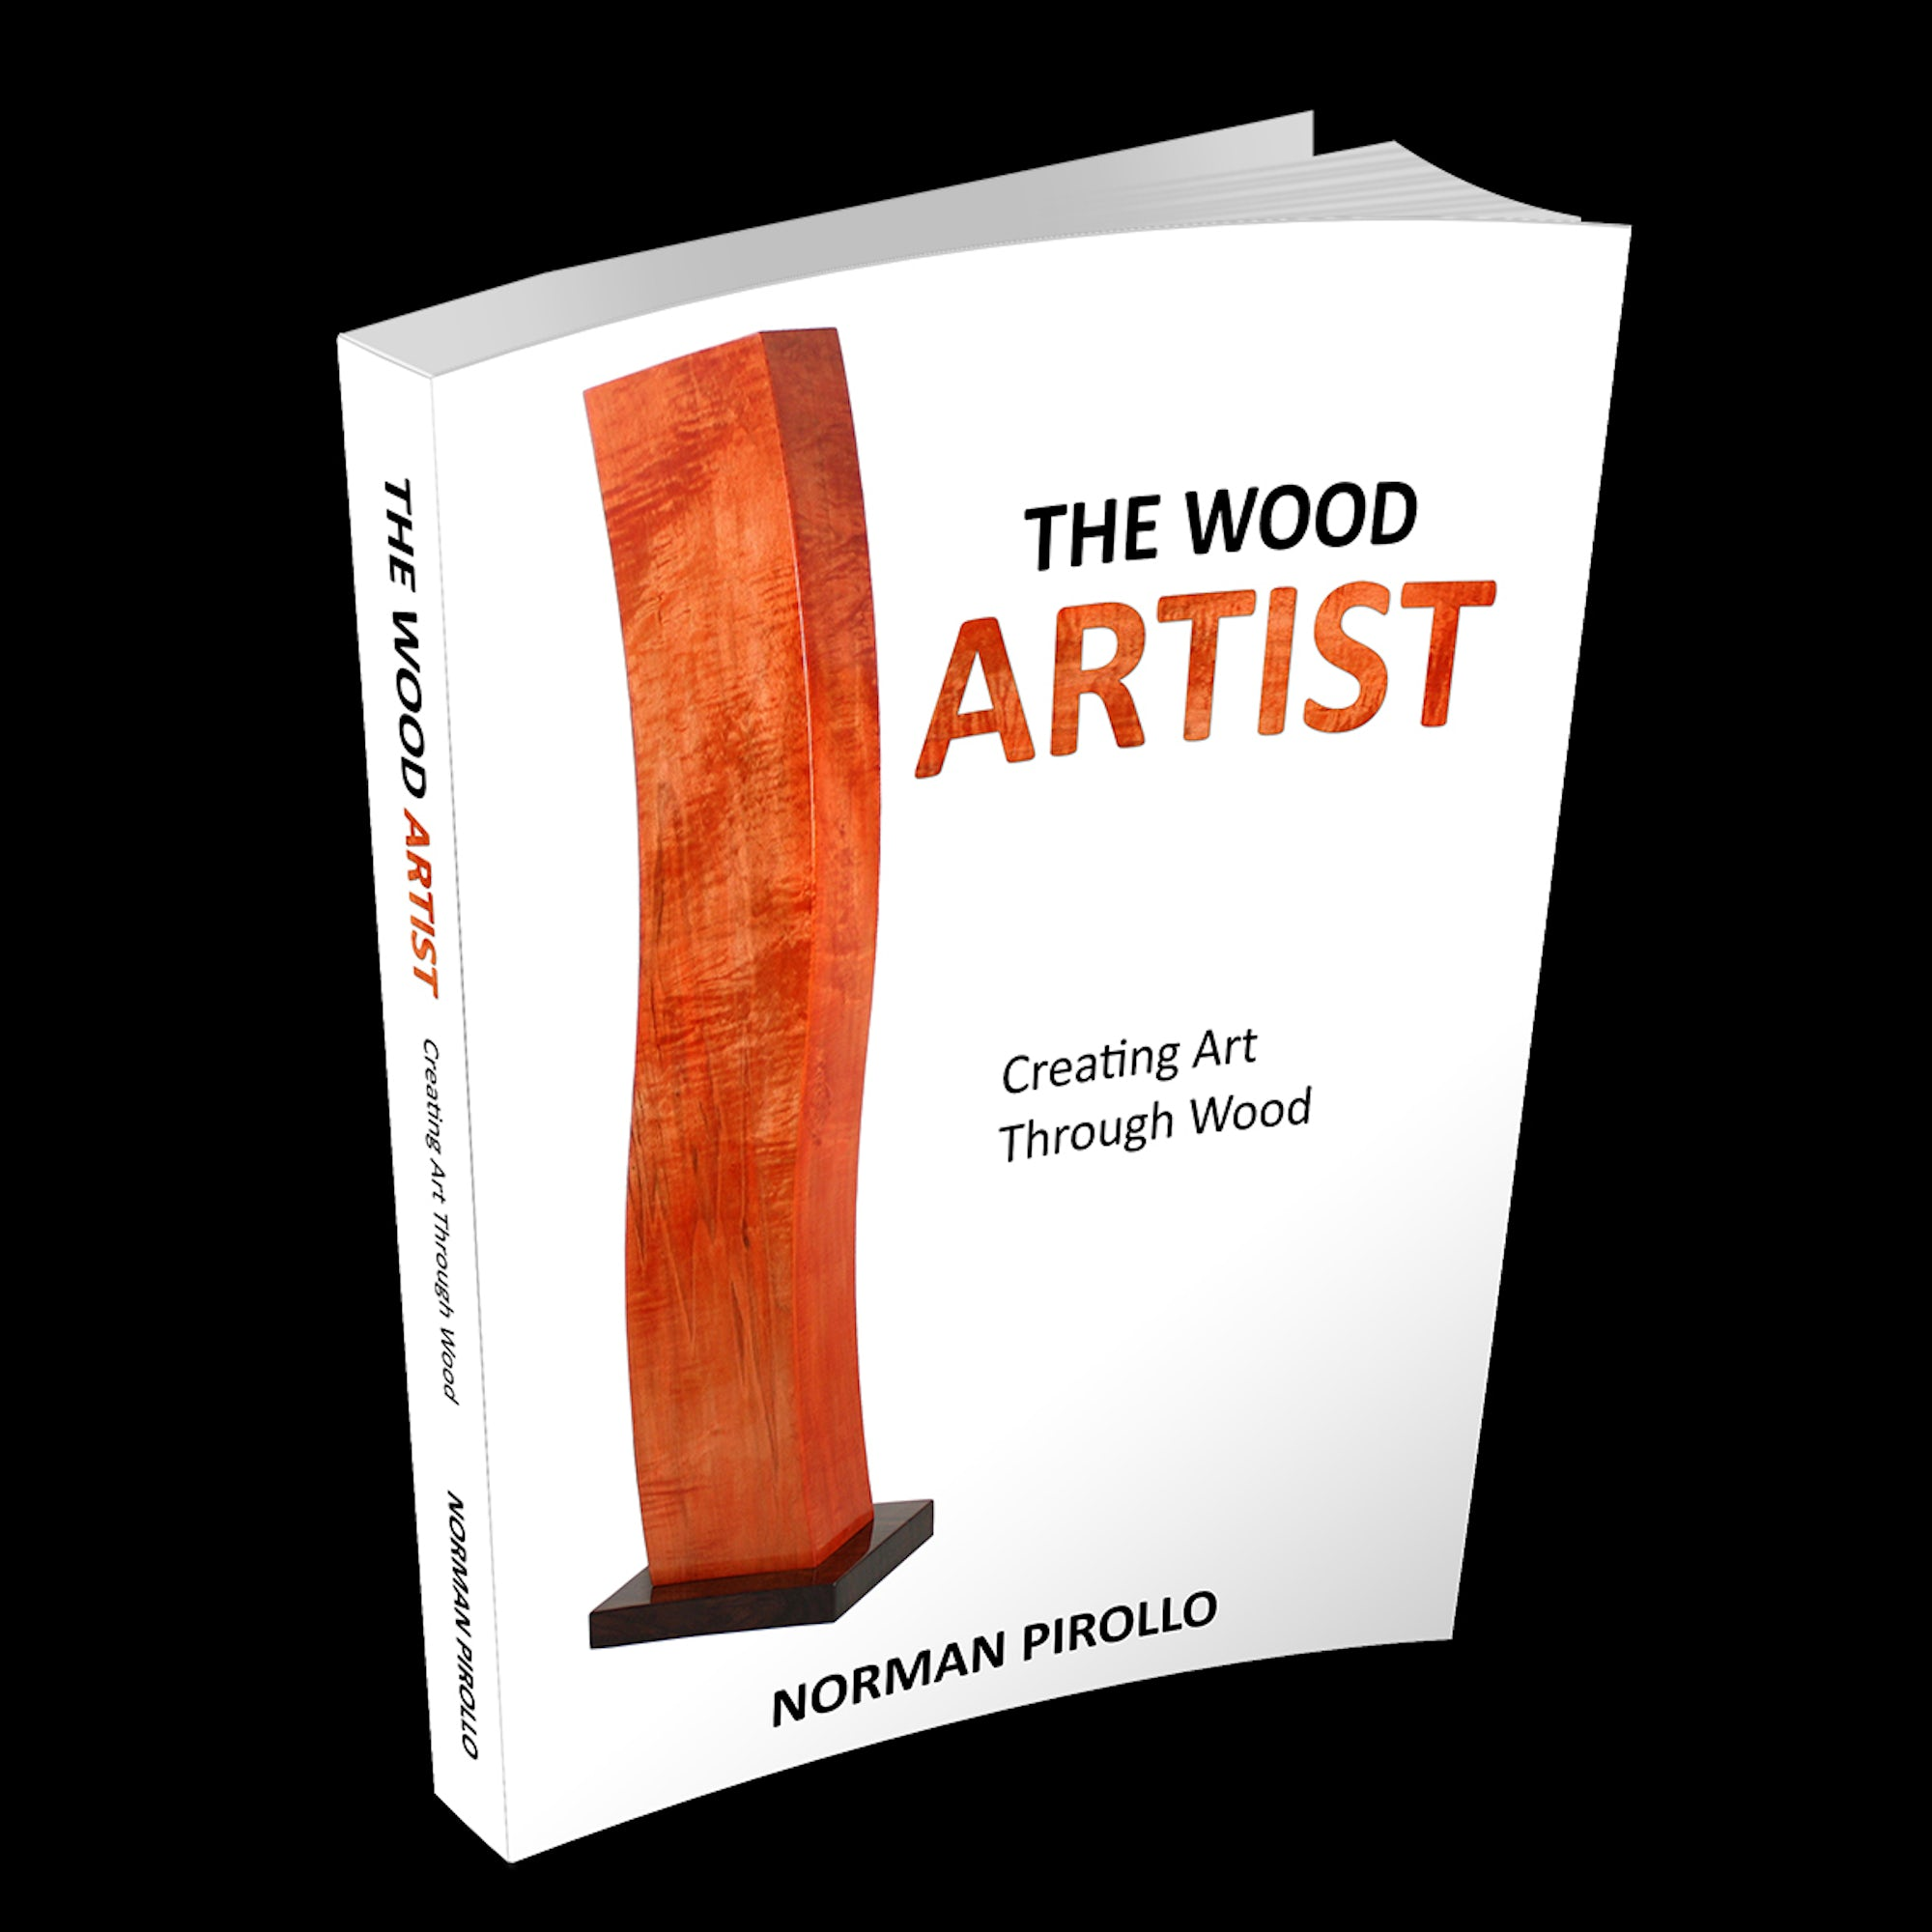 The Wood Artist: Creating Art Through Wood